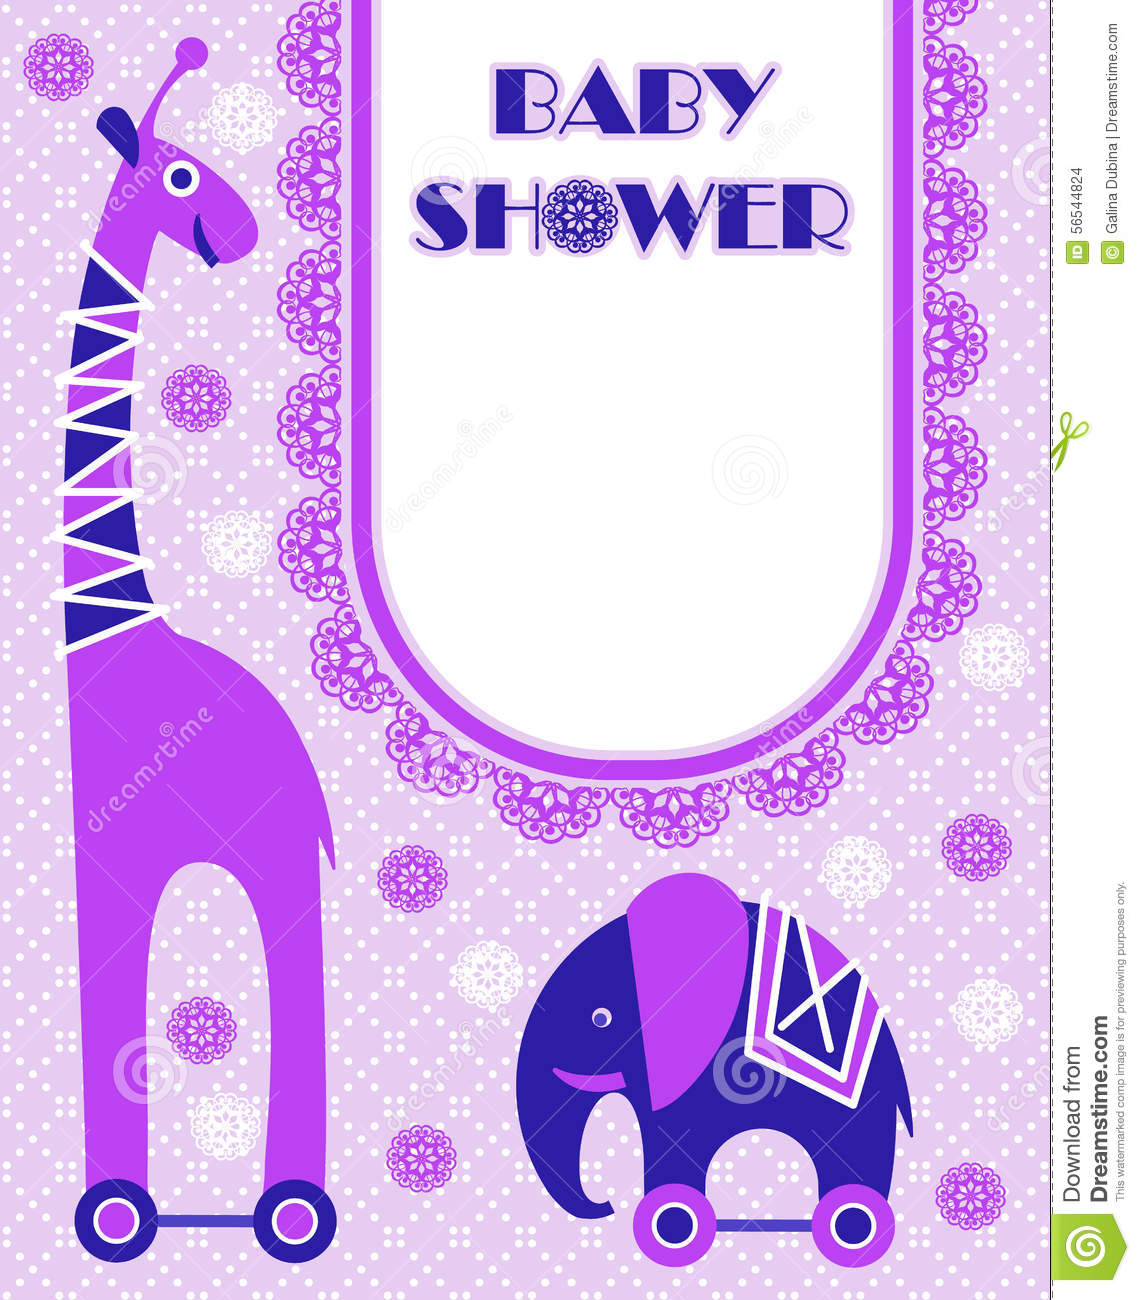 Baby Shower Card Template Stock Vector   Image  56544824 WiFr7neR